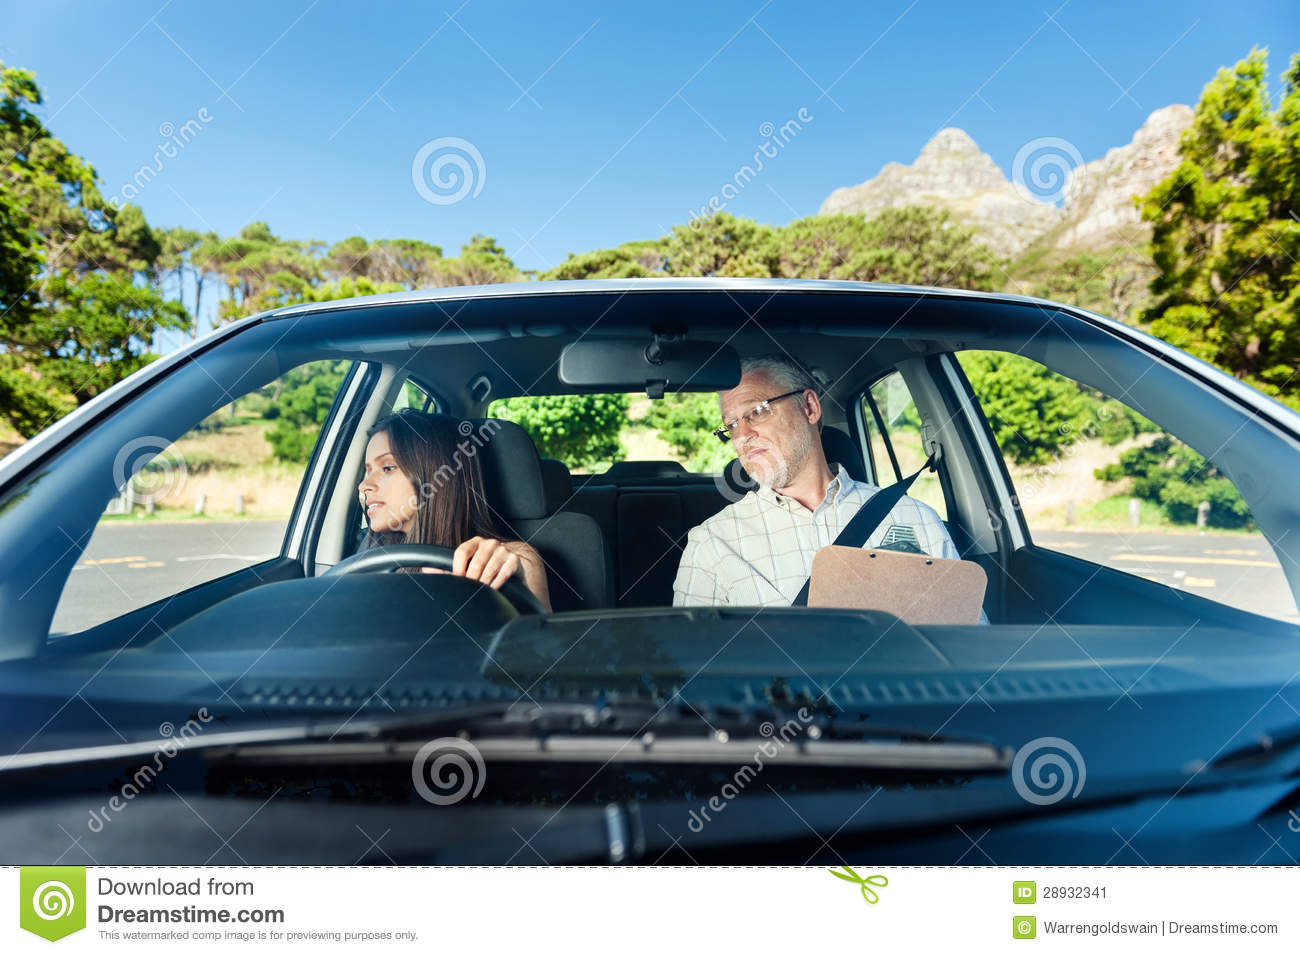 Confident Learner Driver Stock Image - Image: 28932341